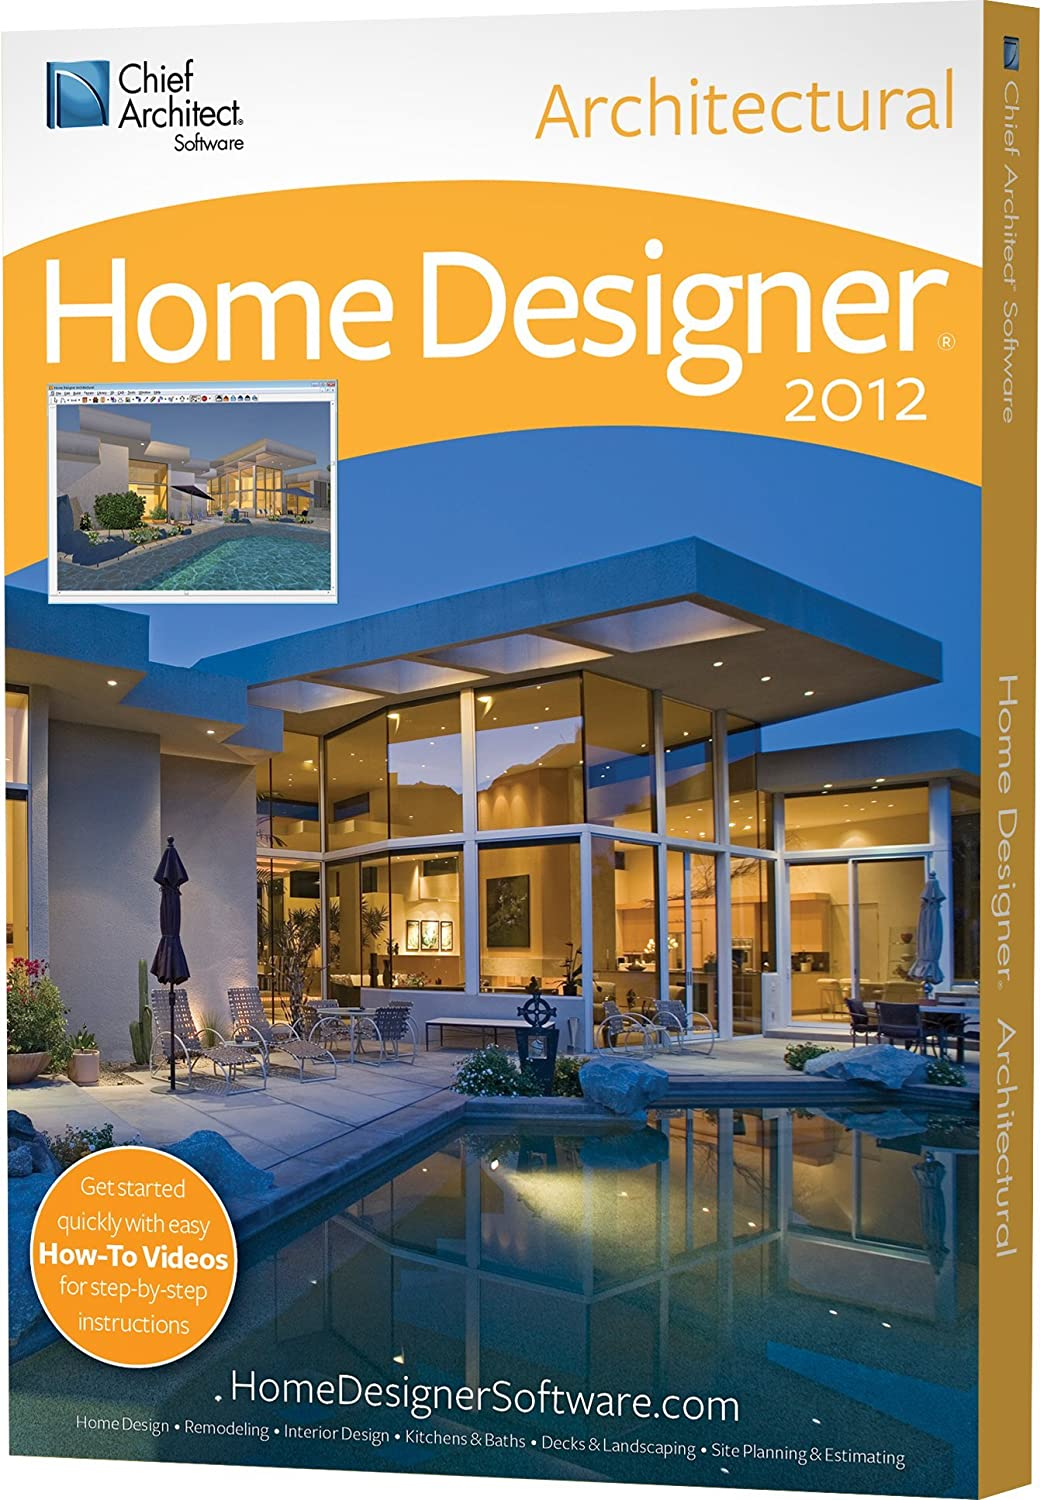 amazoncom home designer architectural 2012 download software - Architect Home Designer